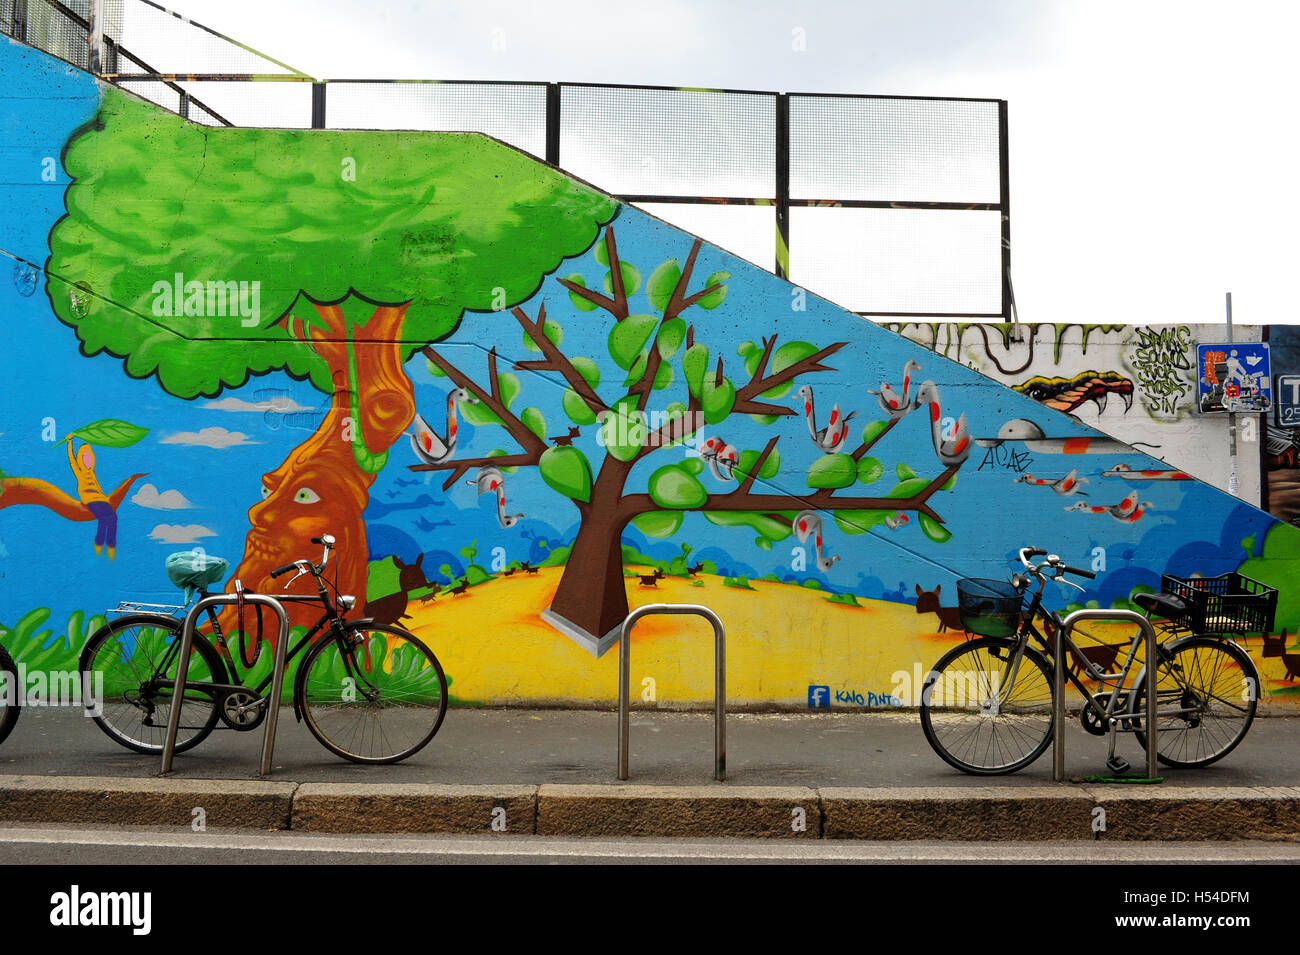 Colourful street art just off the Garibaldi train station, in the Isola district in Milan. Stock Photo